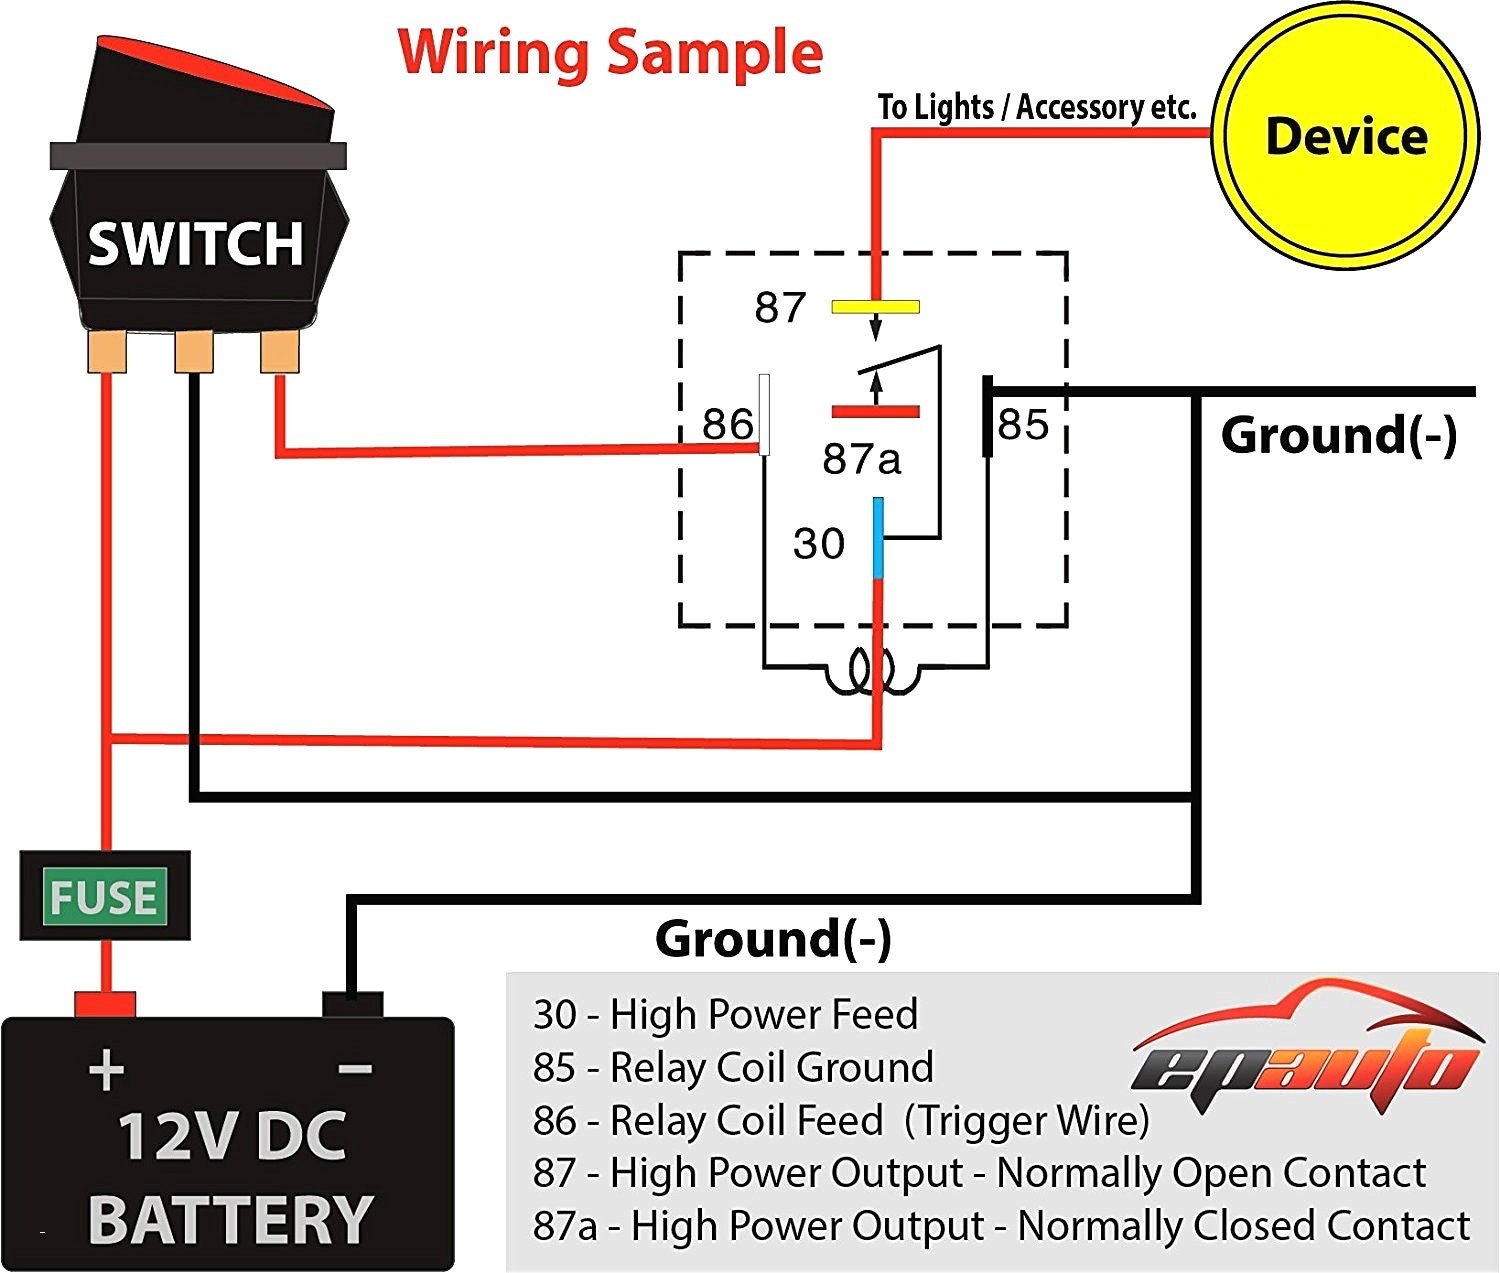 24 volt alternator wiring diagram unique wiring diagram image battery circuit diagram awesome 24 volt battery wiring diagram 24 volt 4 battery wiring diagram asfbconference2016 Image collections